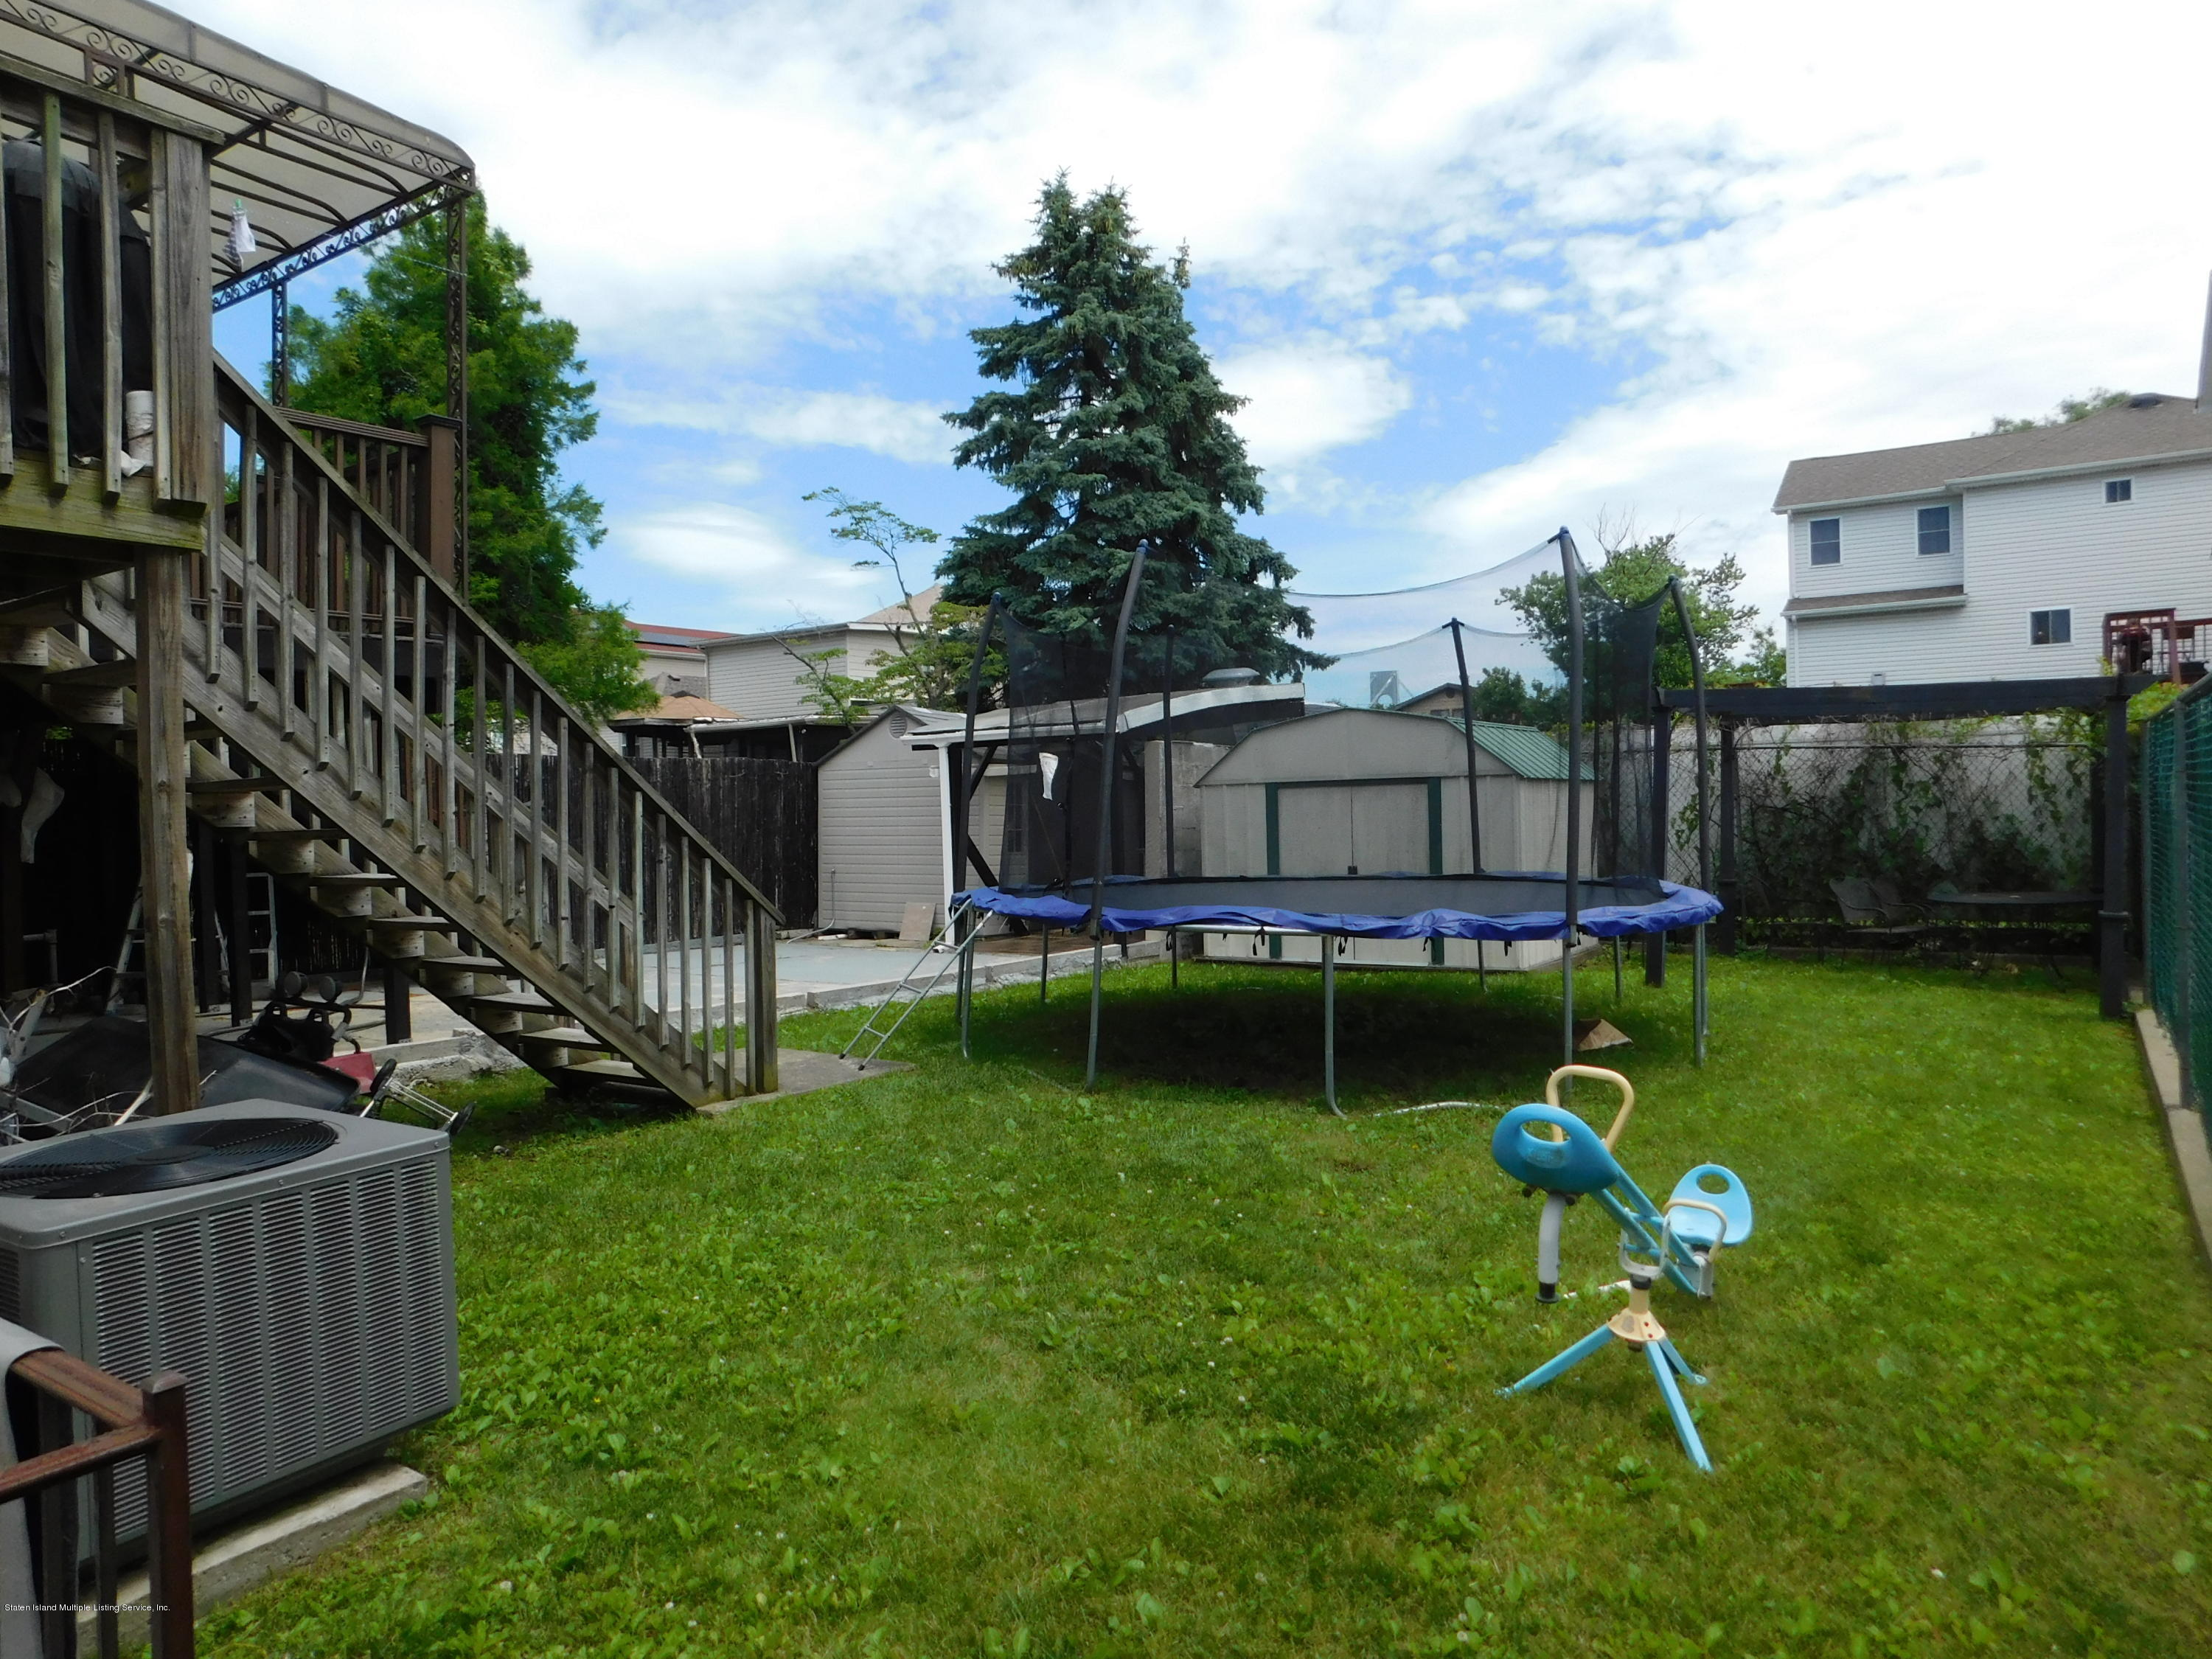 Single Family - Attached 73 Mclaughlin Street  Staten Island, NY 10305, MLS-1129992-12